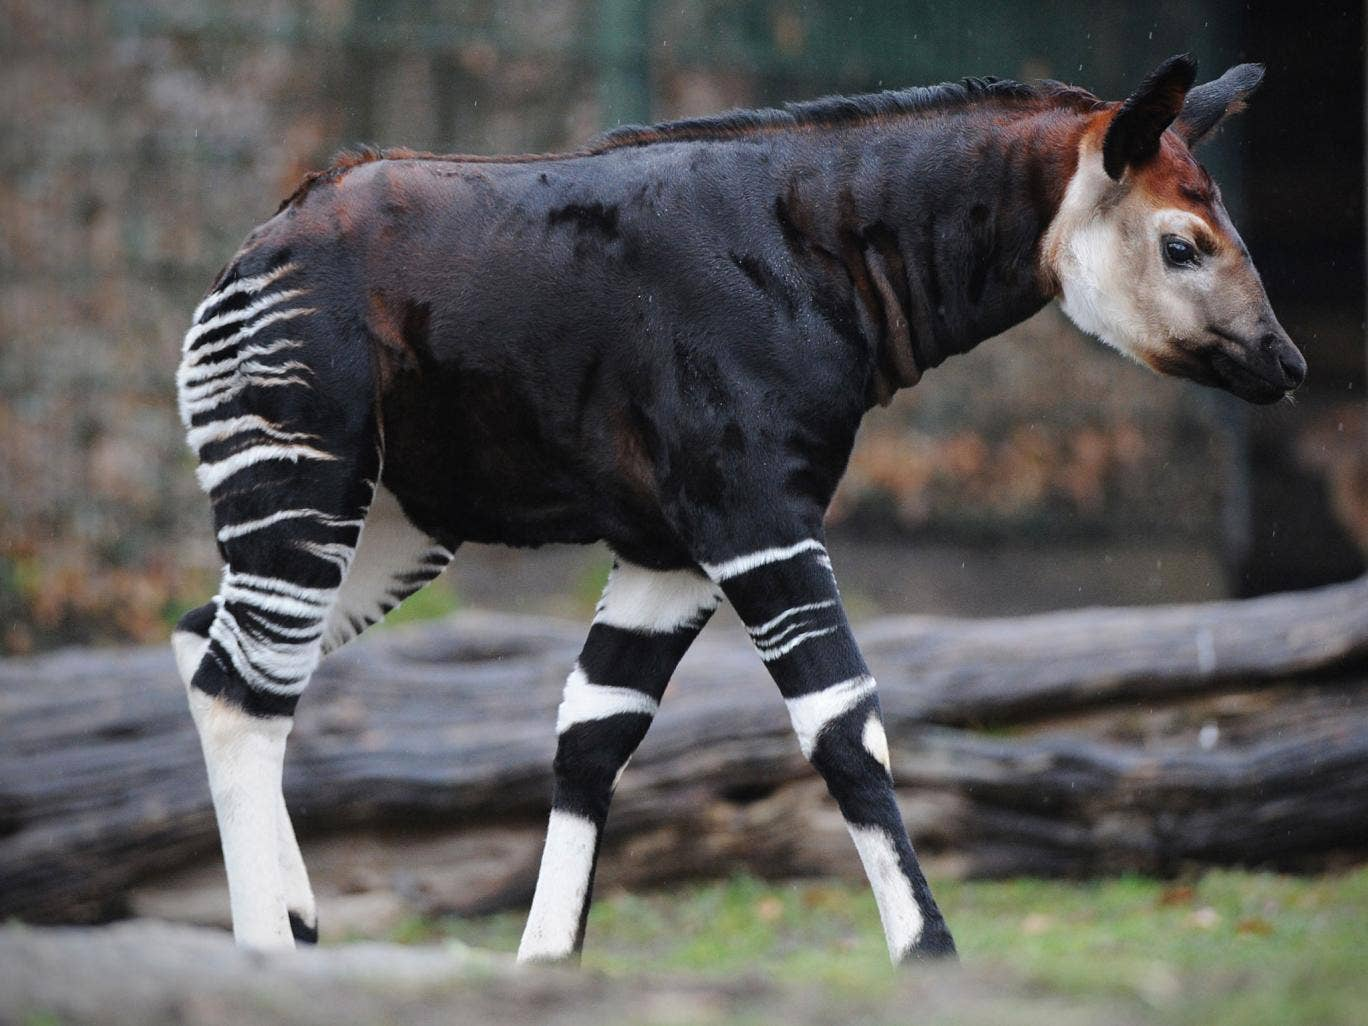 The okapi is a national symbol in Congo